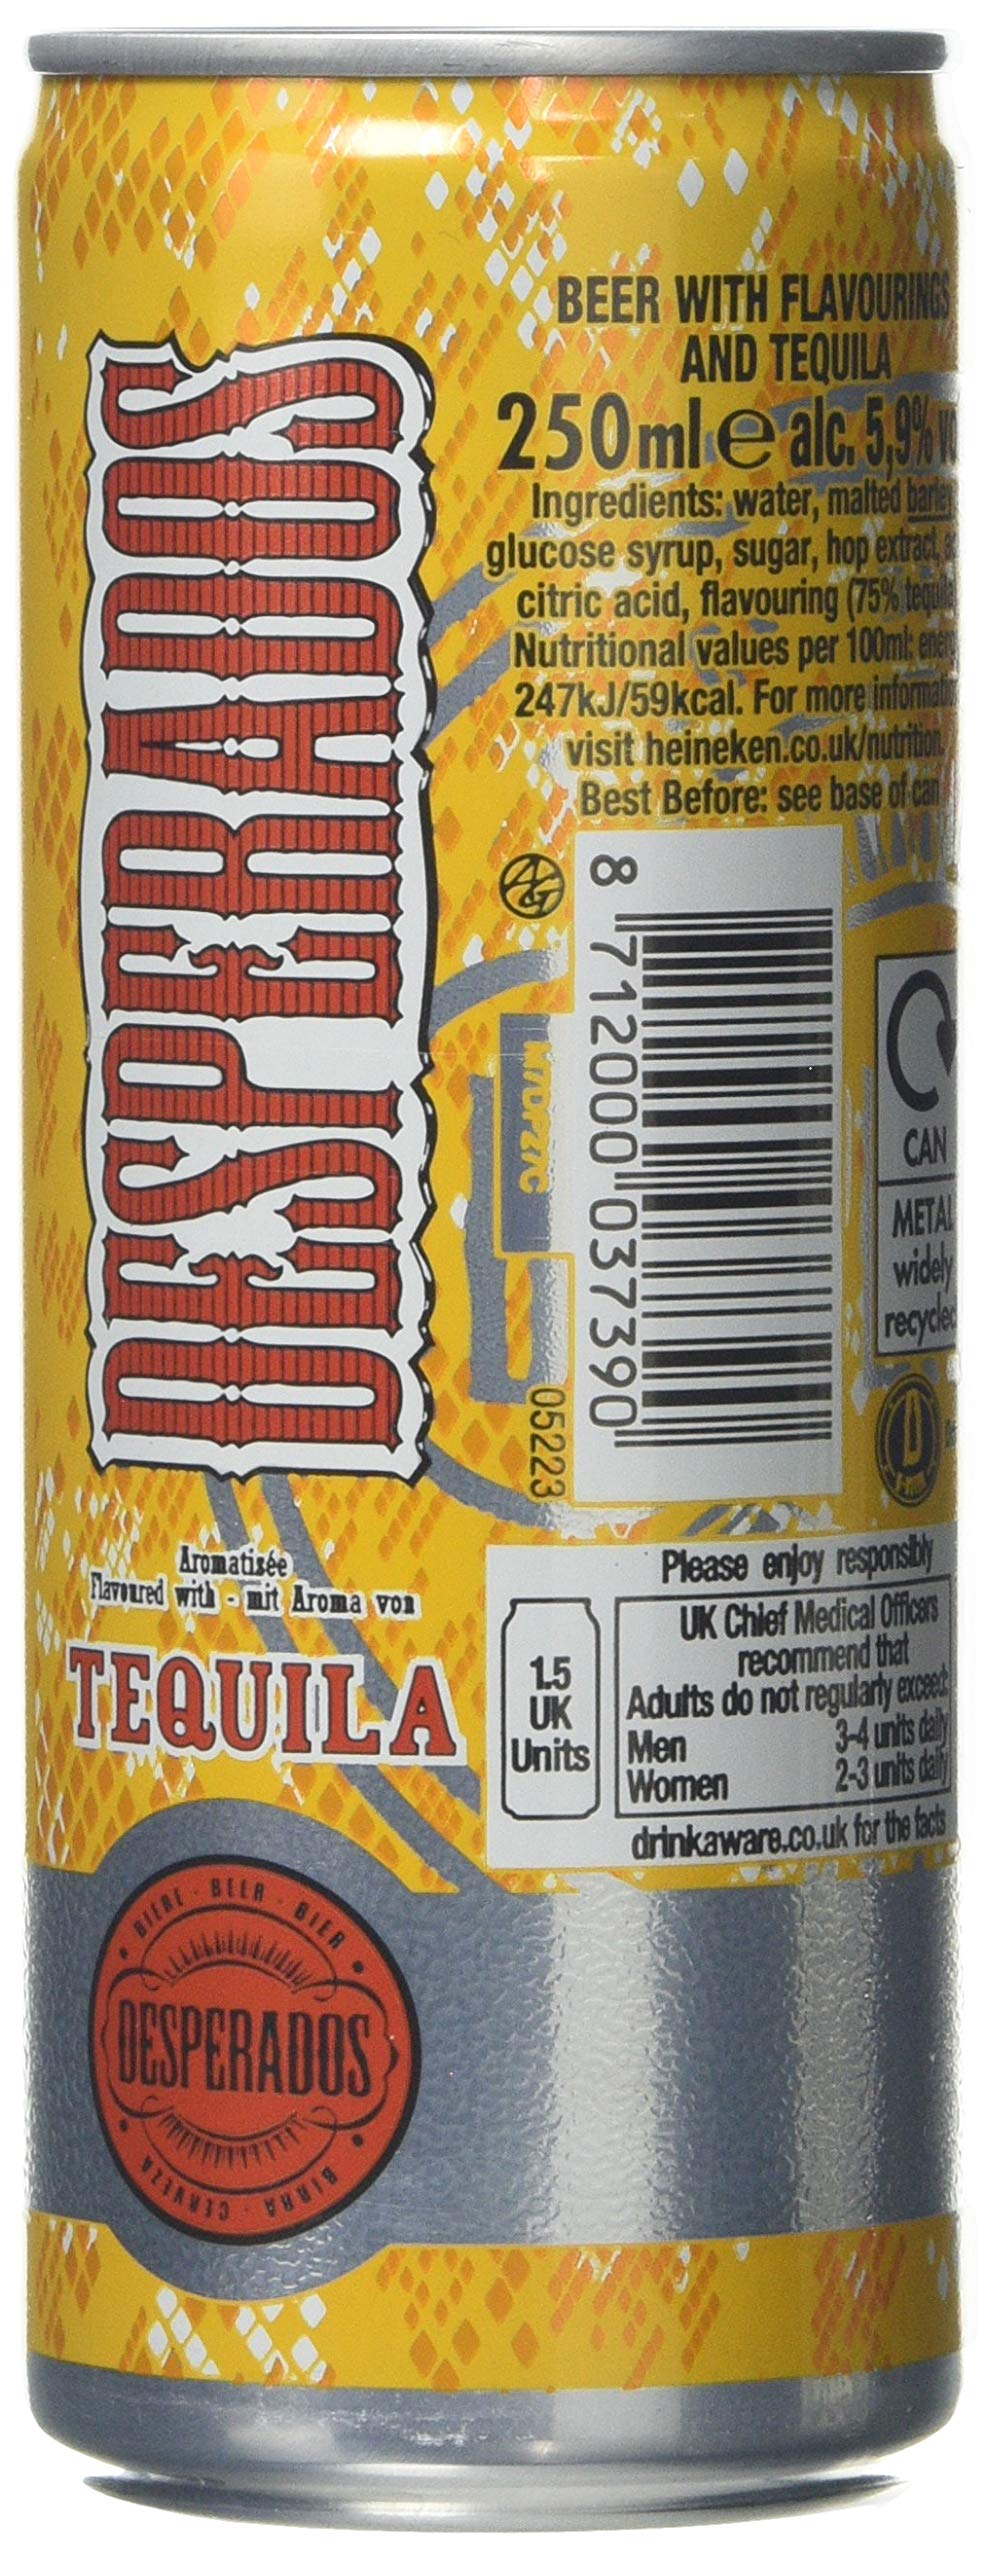 Desperados Cans 24 X 500ml Buy Online In El Salvador Desperados Products In El Salvador See Prices Reviews And Free Delivery Over Us 70 00 Desertcart